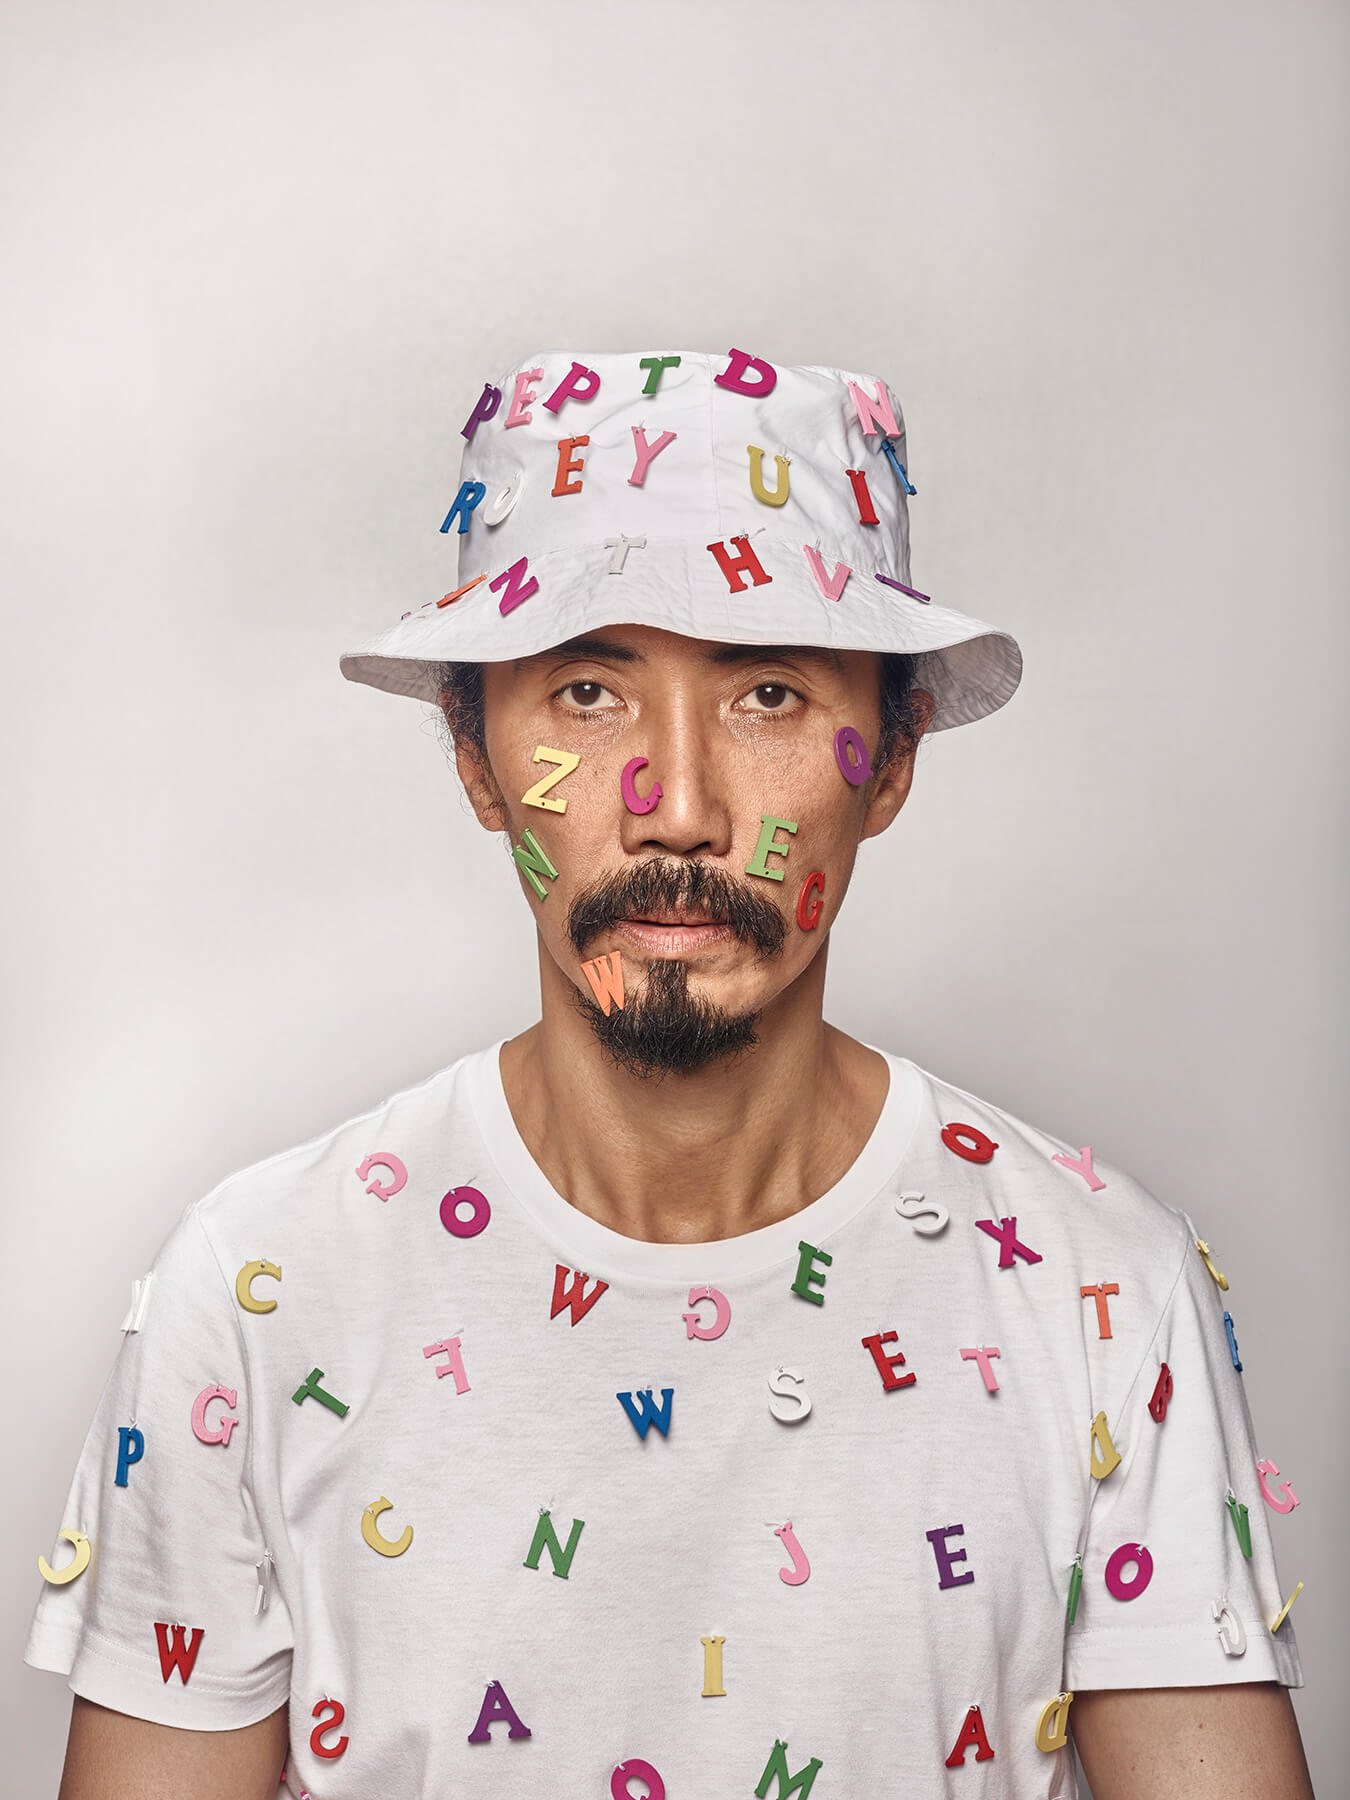 13 Aug 2017 Derong wears a white hat and white tee, with colourful alphabets stuck all over